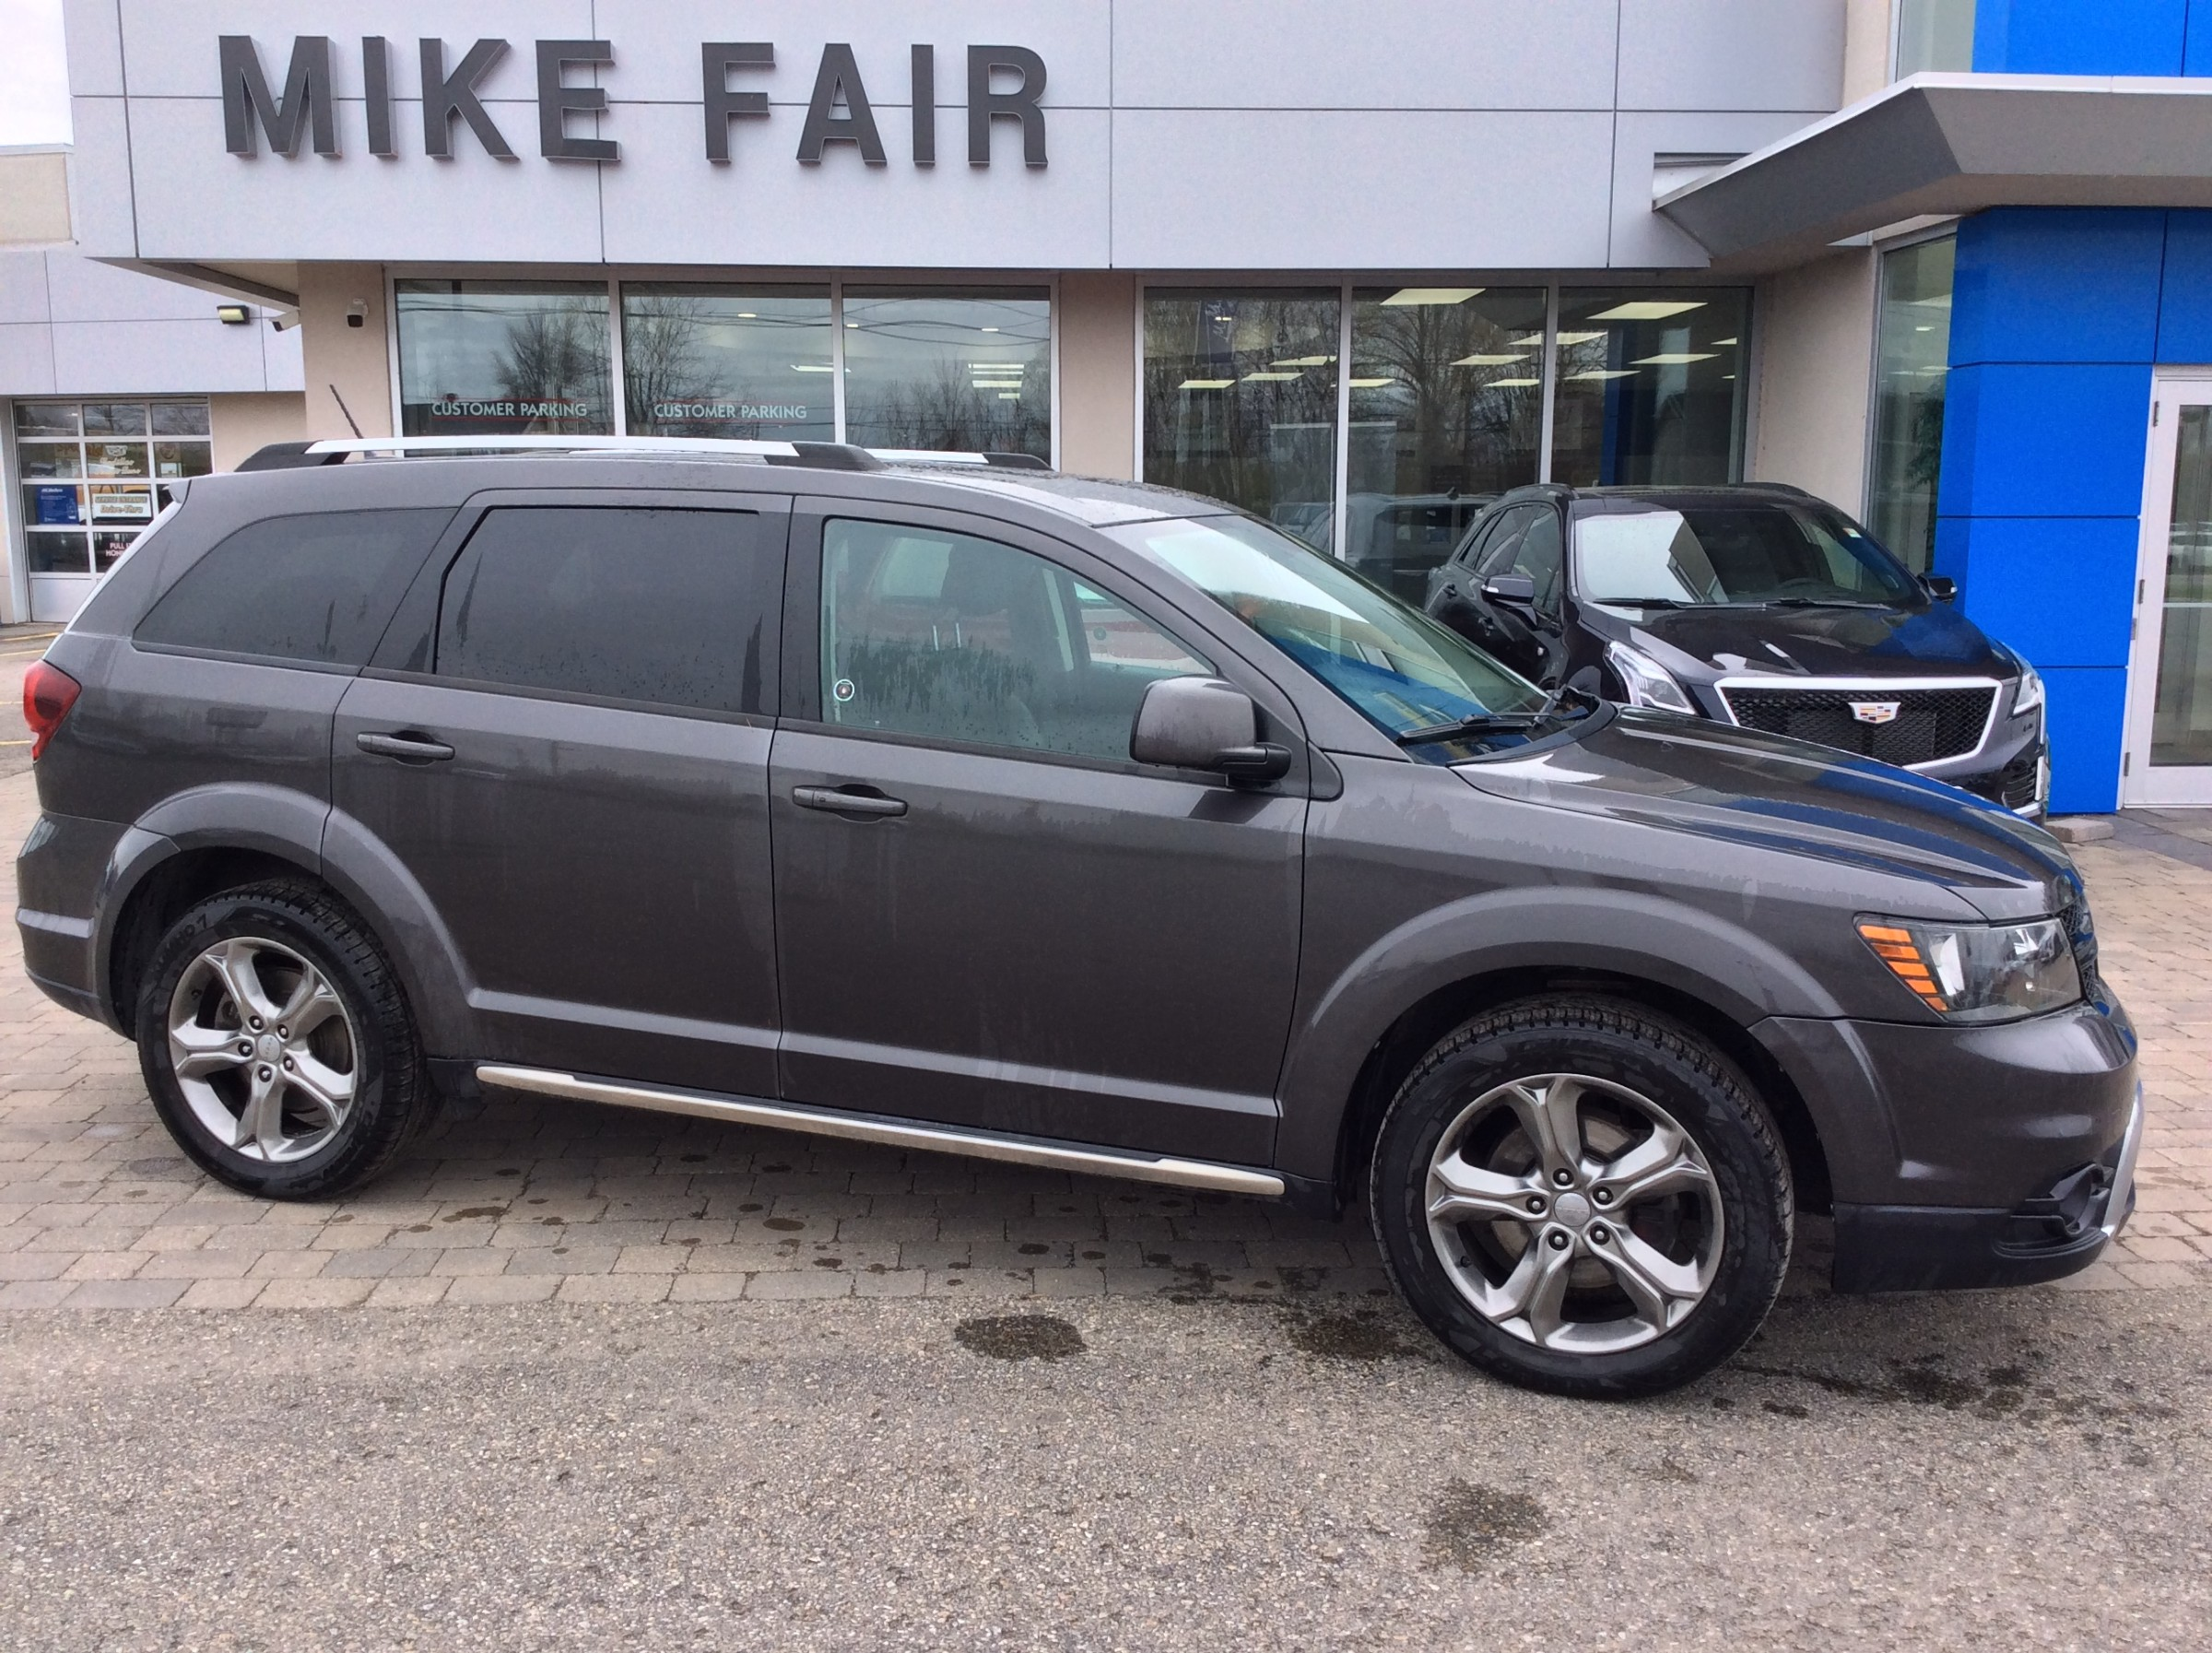 2016 Dodge Journey Crossroad - 77,117km